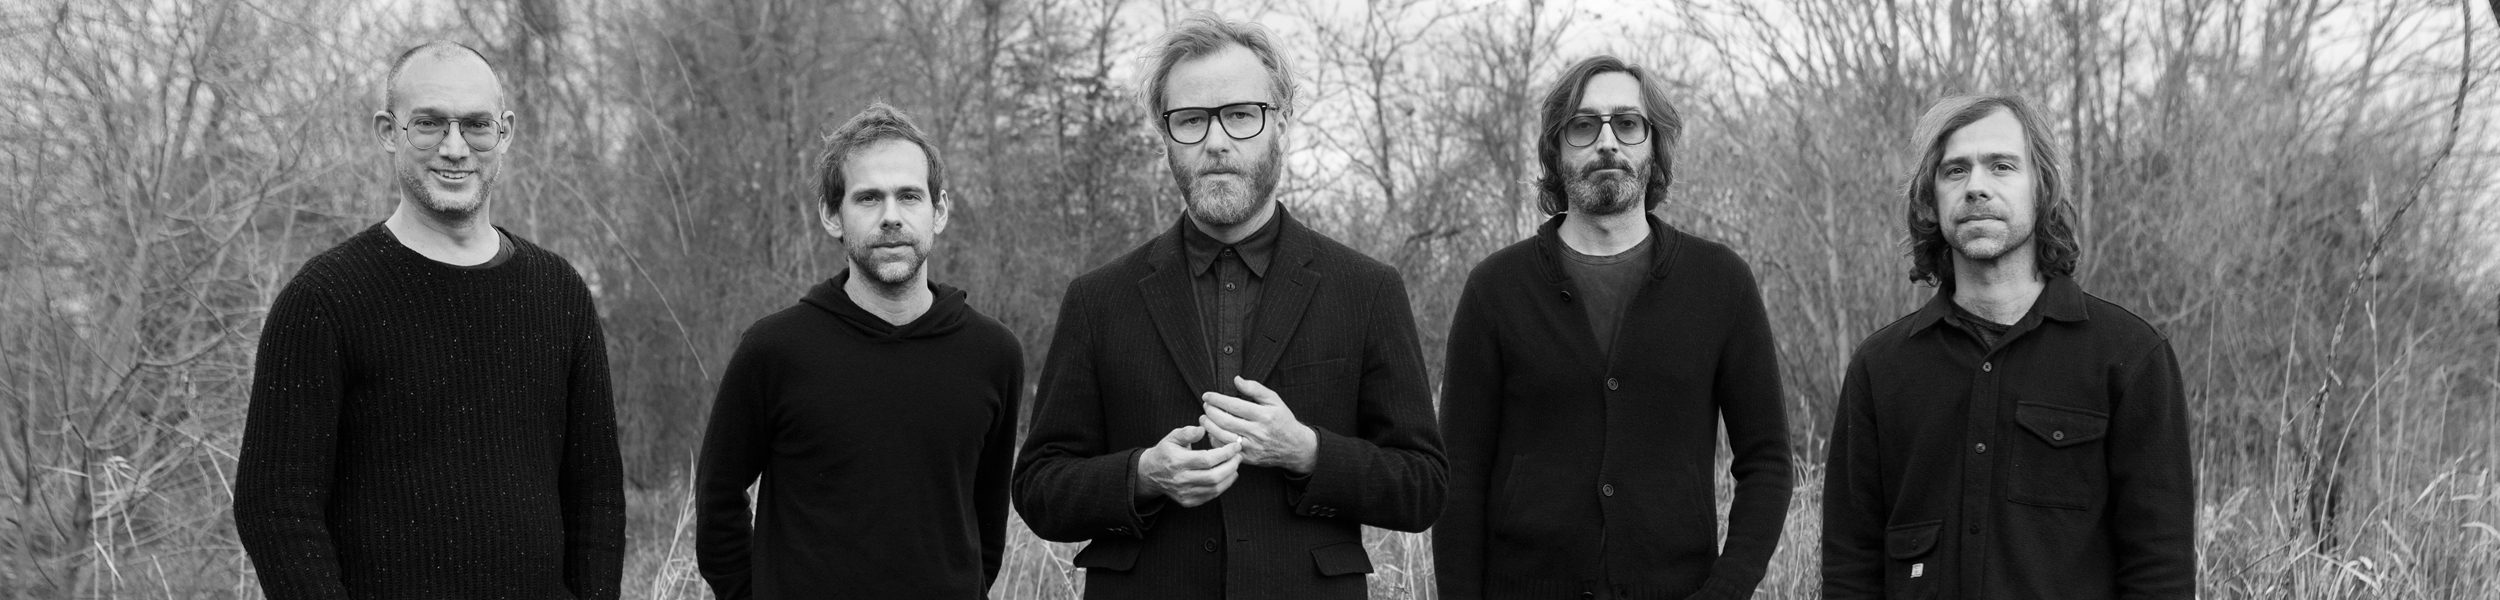 The National - 'Mistaken For Strangers' Film To Get UK Release